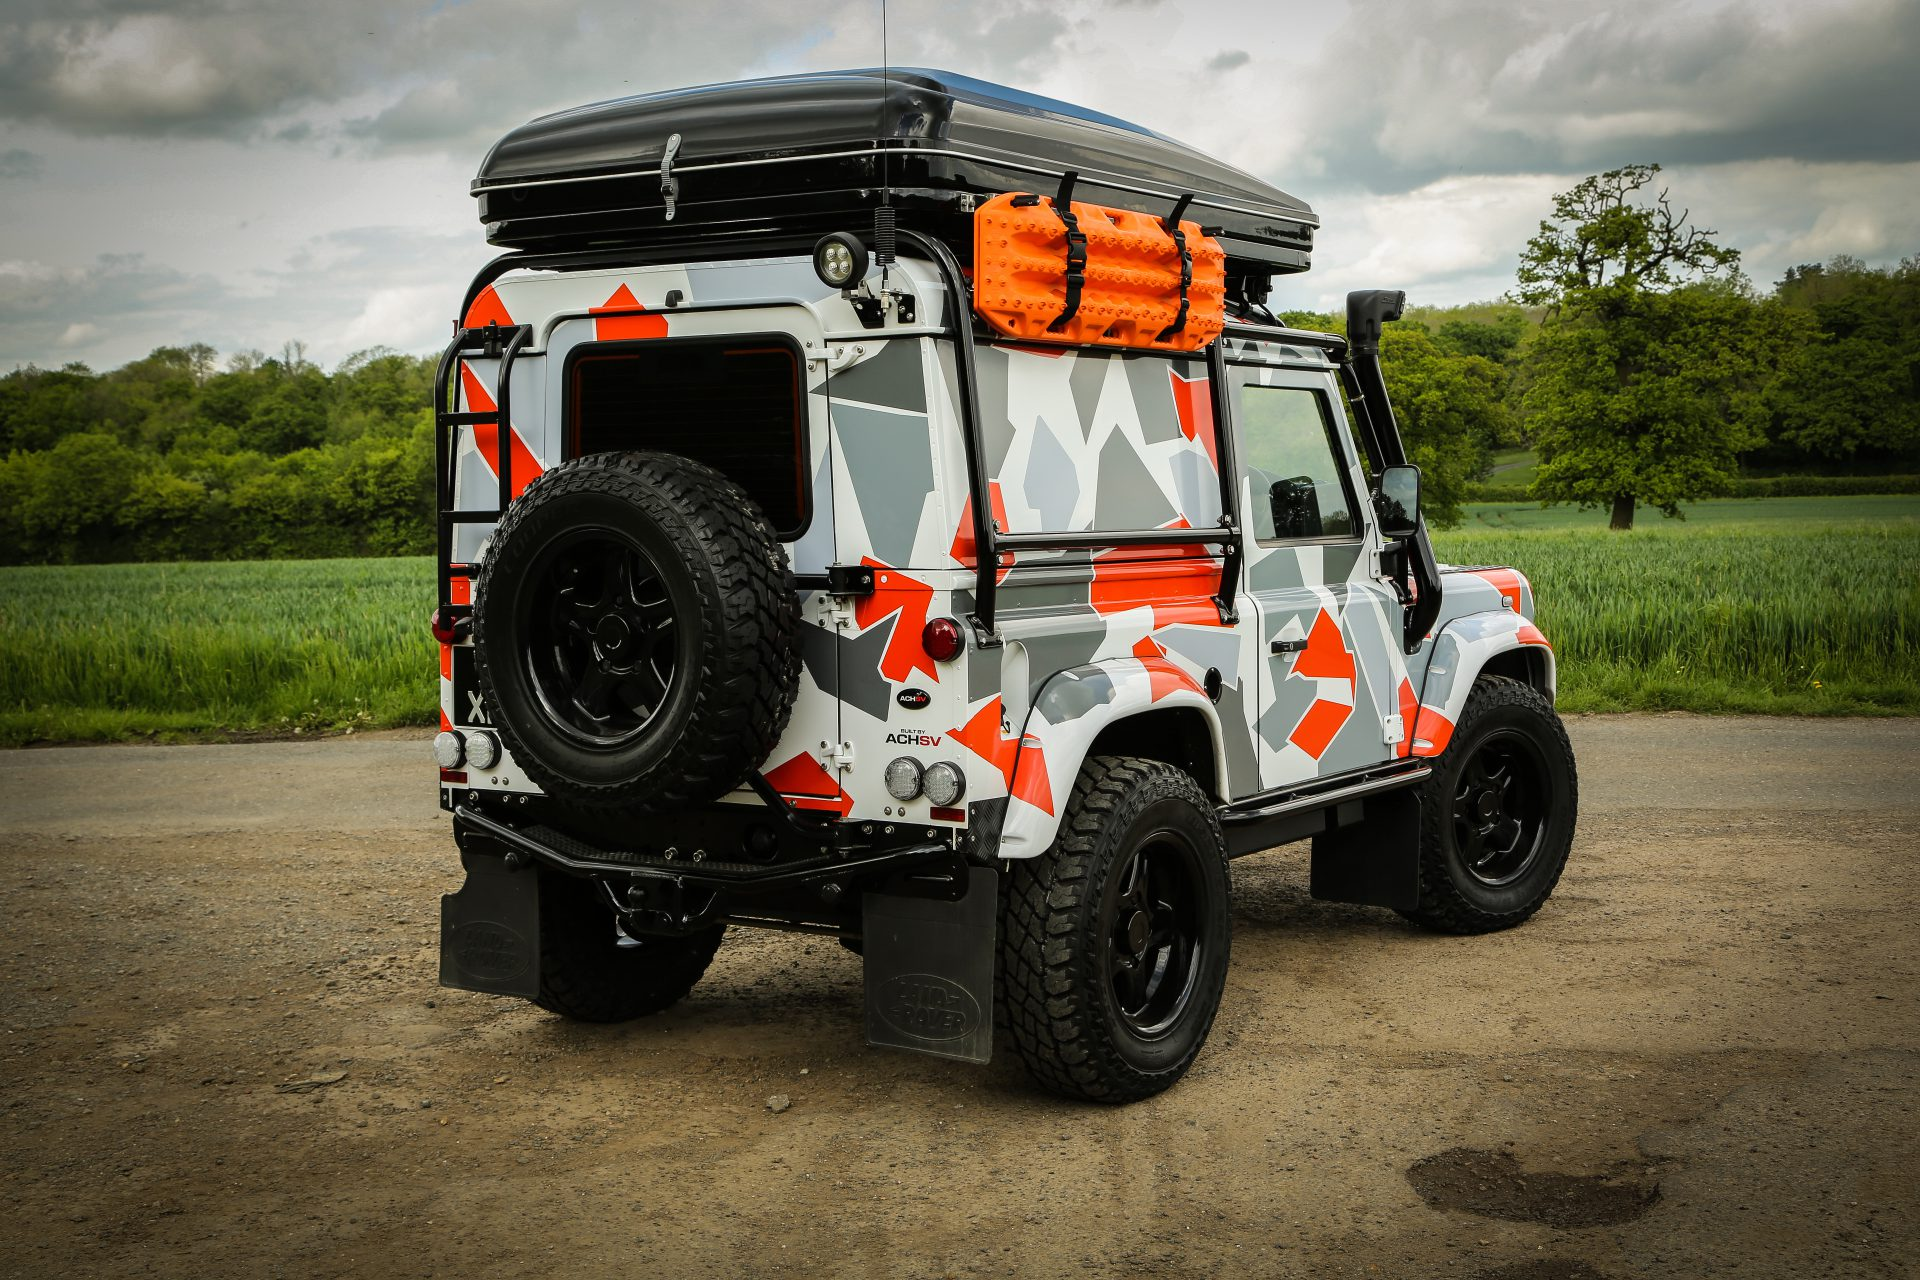 Land Rover Defender 90 Custom Build by ACHSV 4x4 - Overflowing with 4x4 accessories, riding on Air Suspension and finished in Arctic camouflage effect paintwork